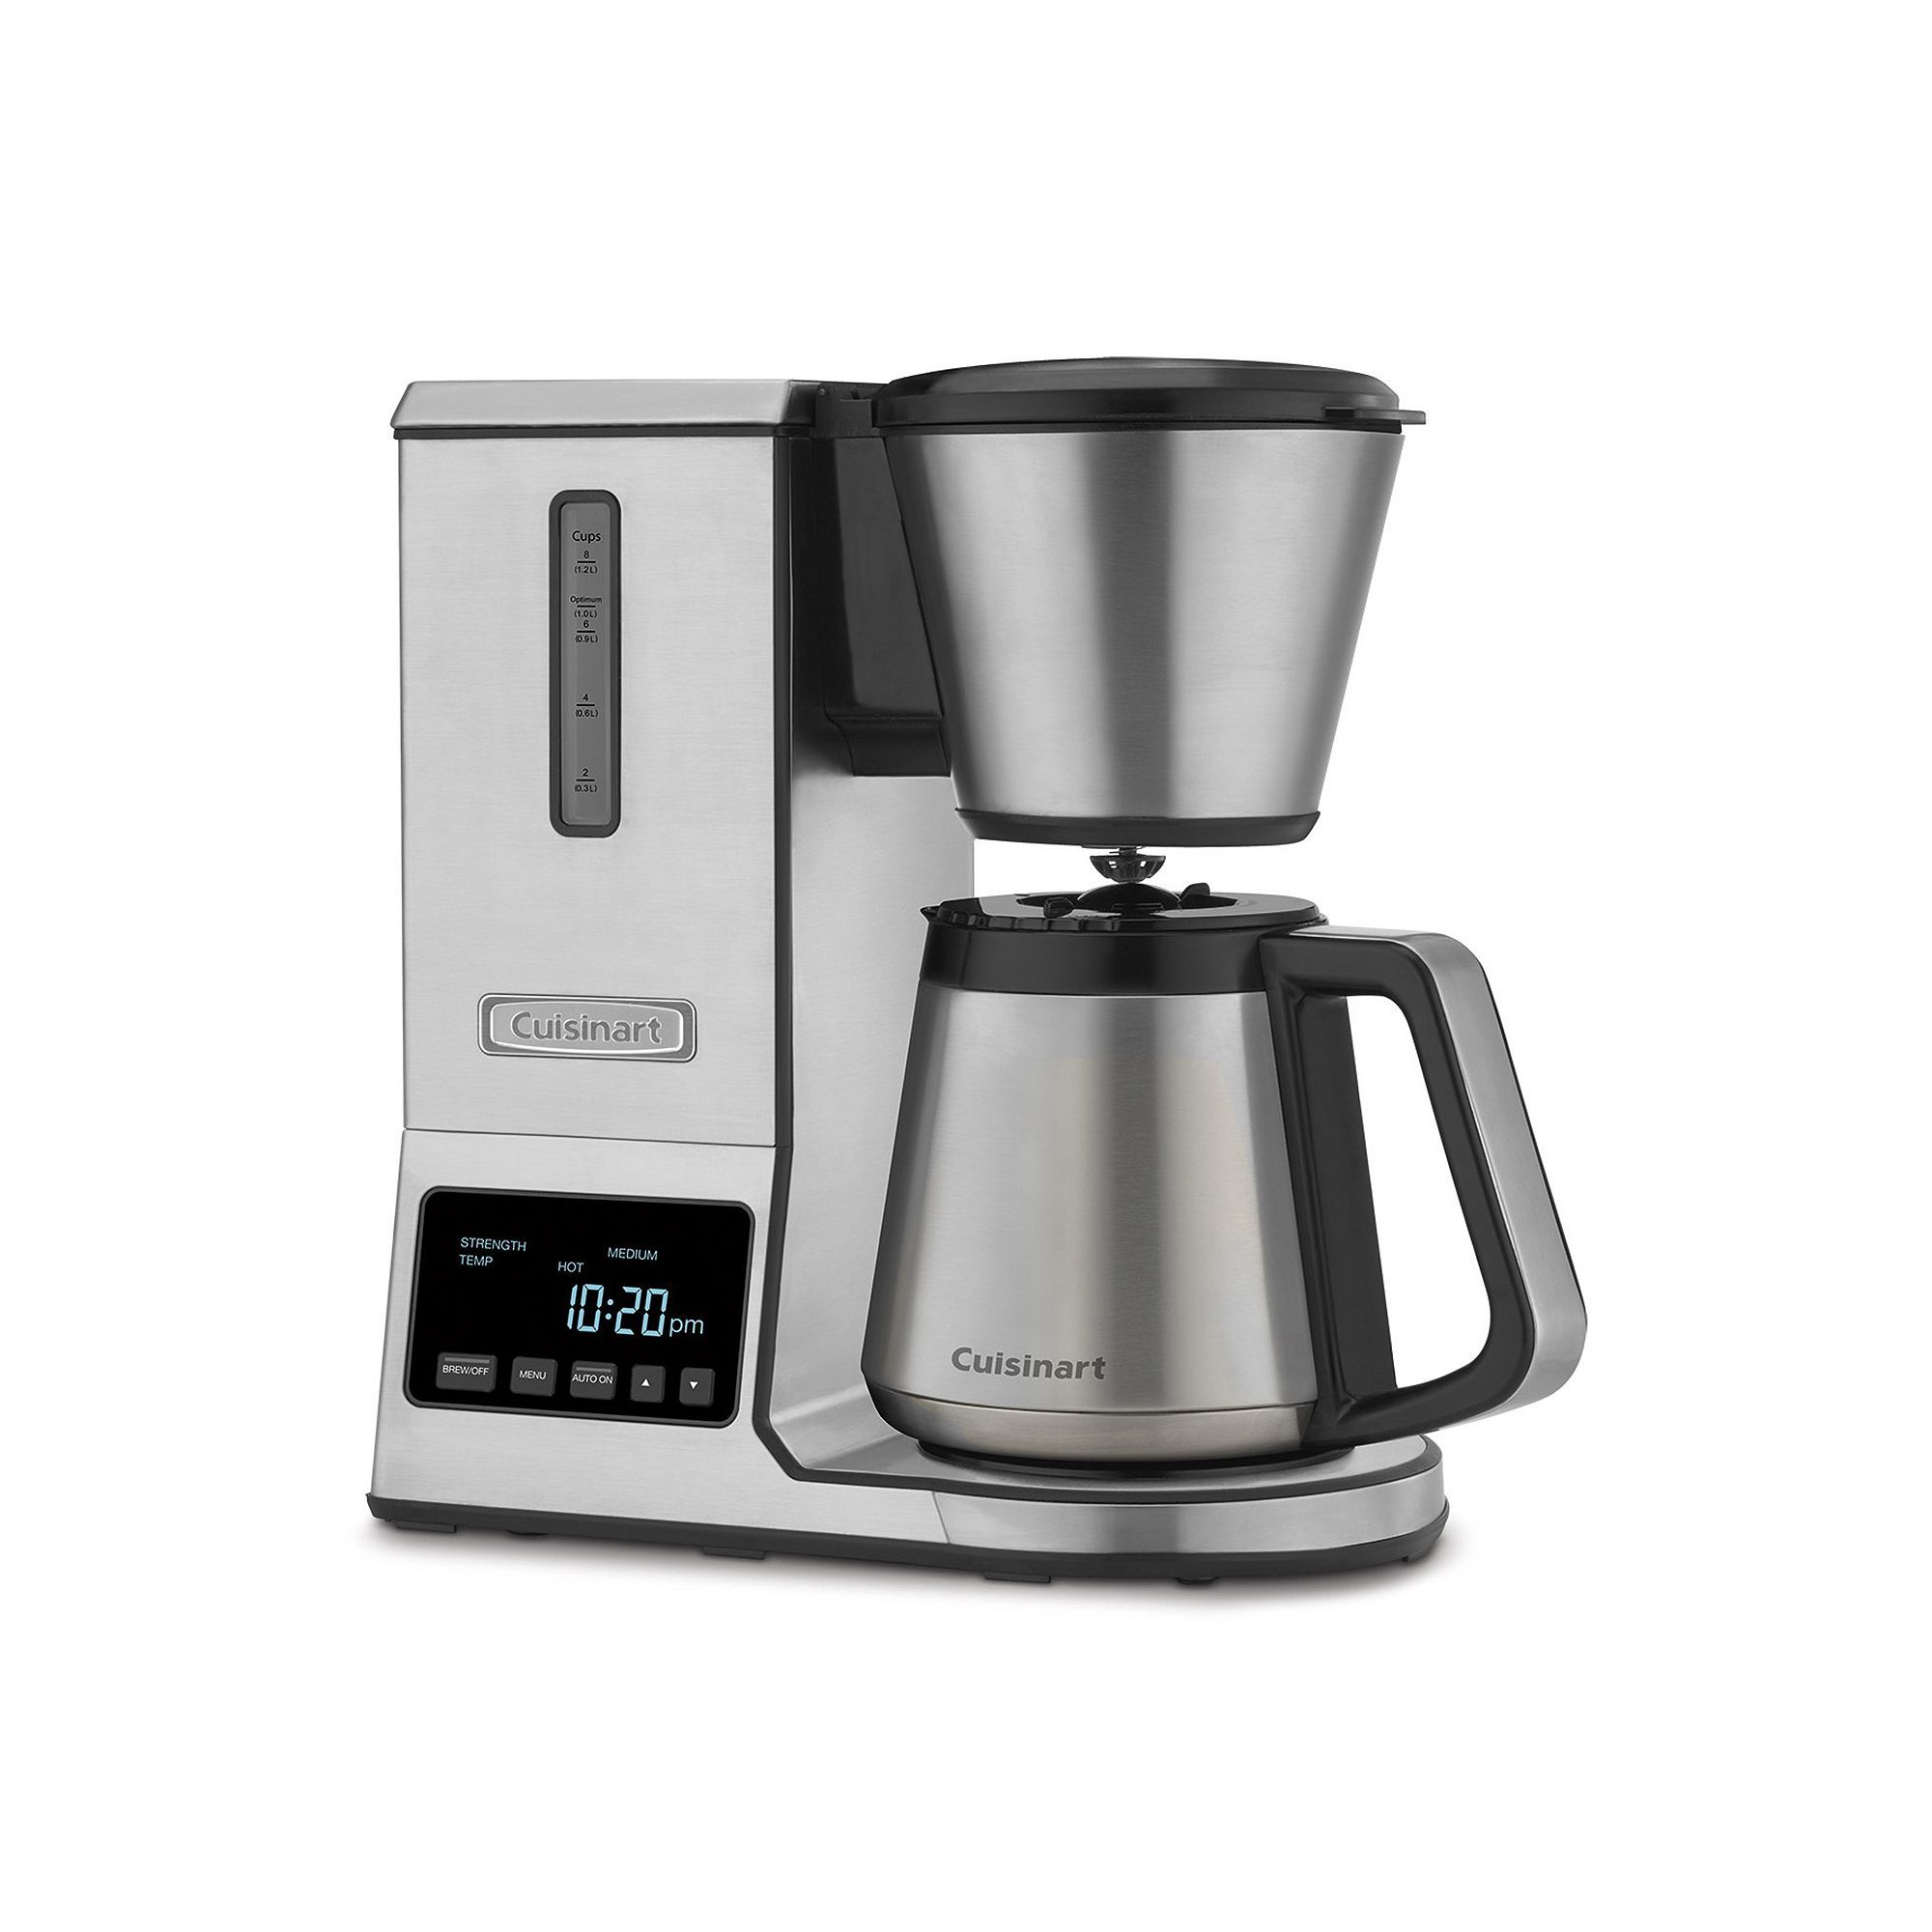 Cuisinart® PurePrecision PourOver Coffee Brewer with